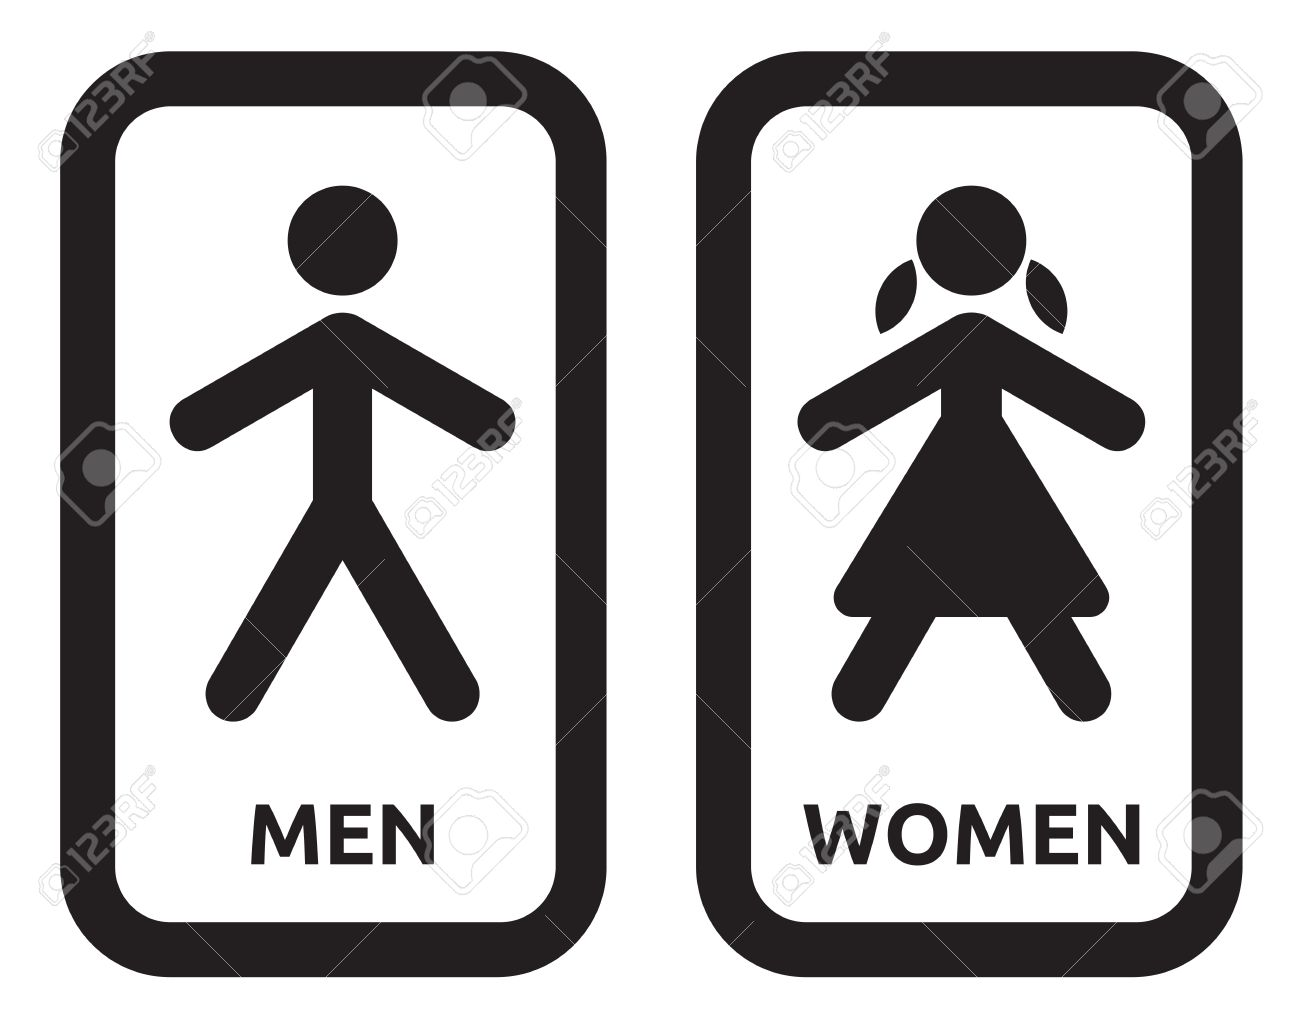 Bathroom Sign Man And Woman man and women wc sign royalty free cliparts, vectors, and stock